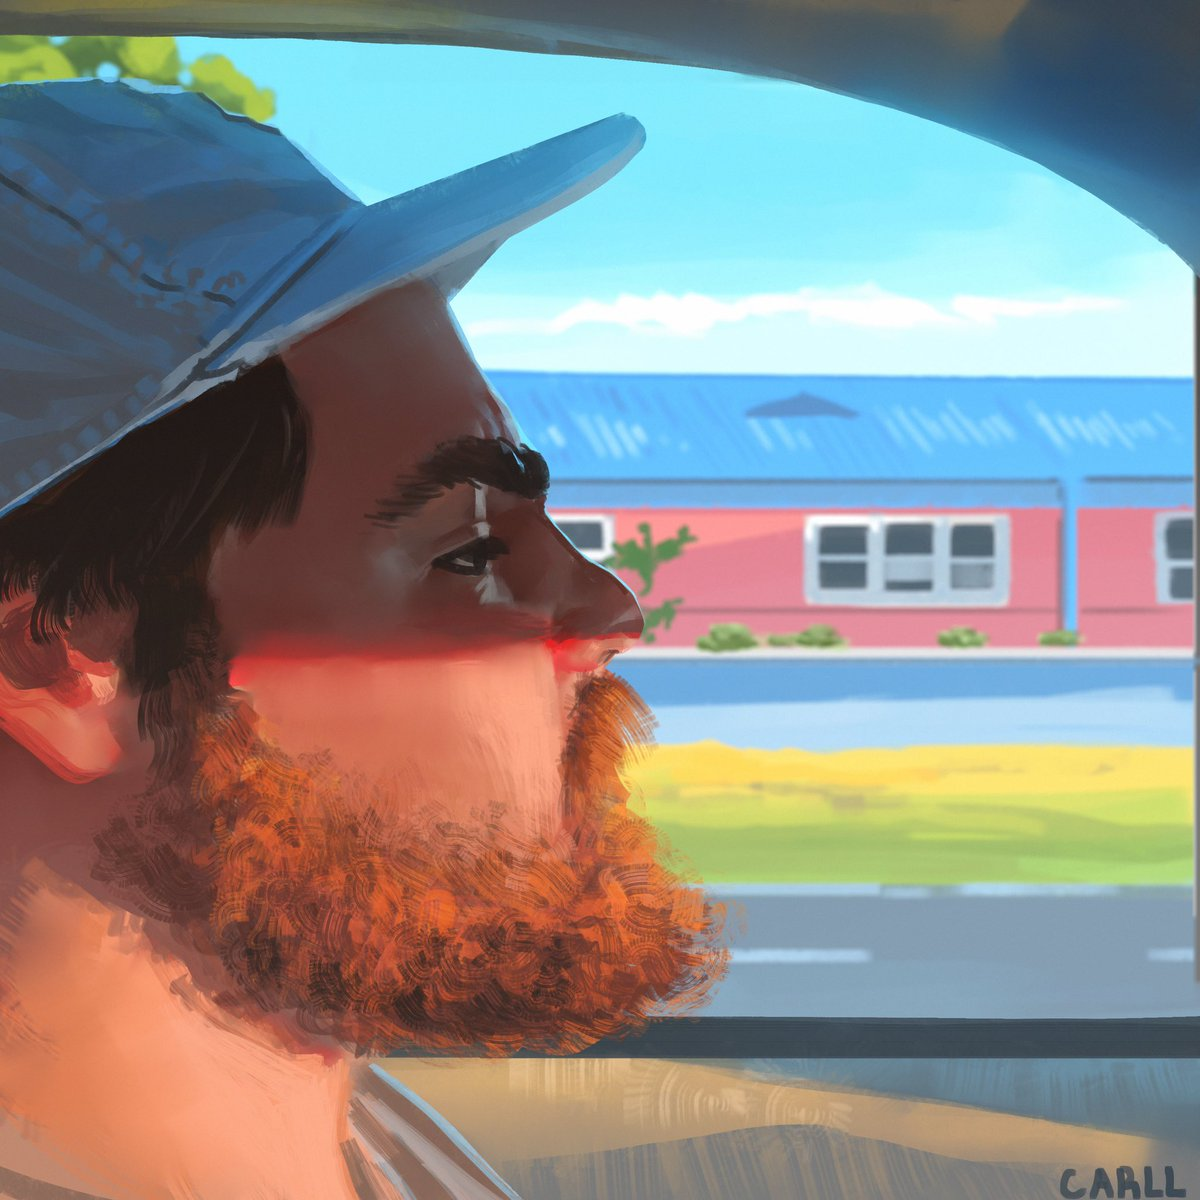 Photo study! Trying to focus on color and light. #artistsontwitter #digitalart #painting pic.twitter.com/HZusiovsWX